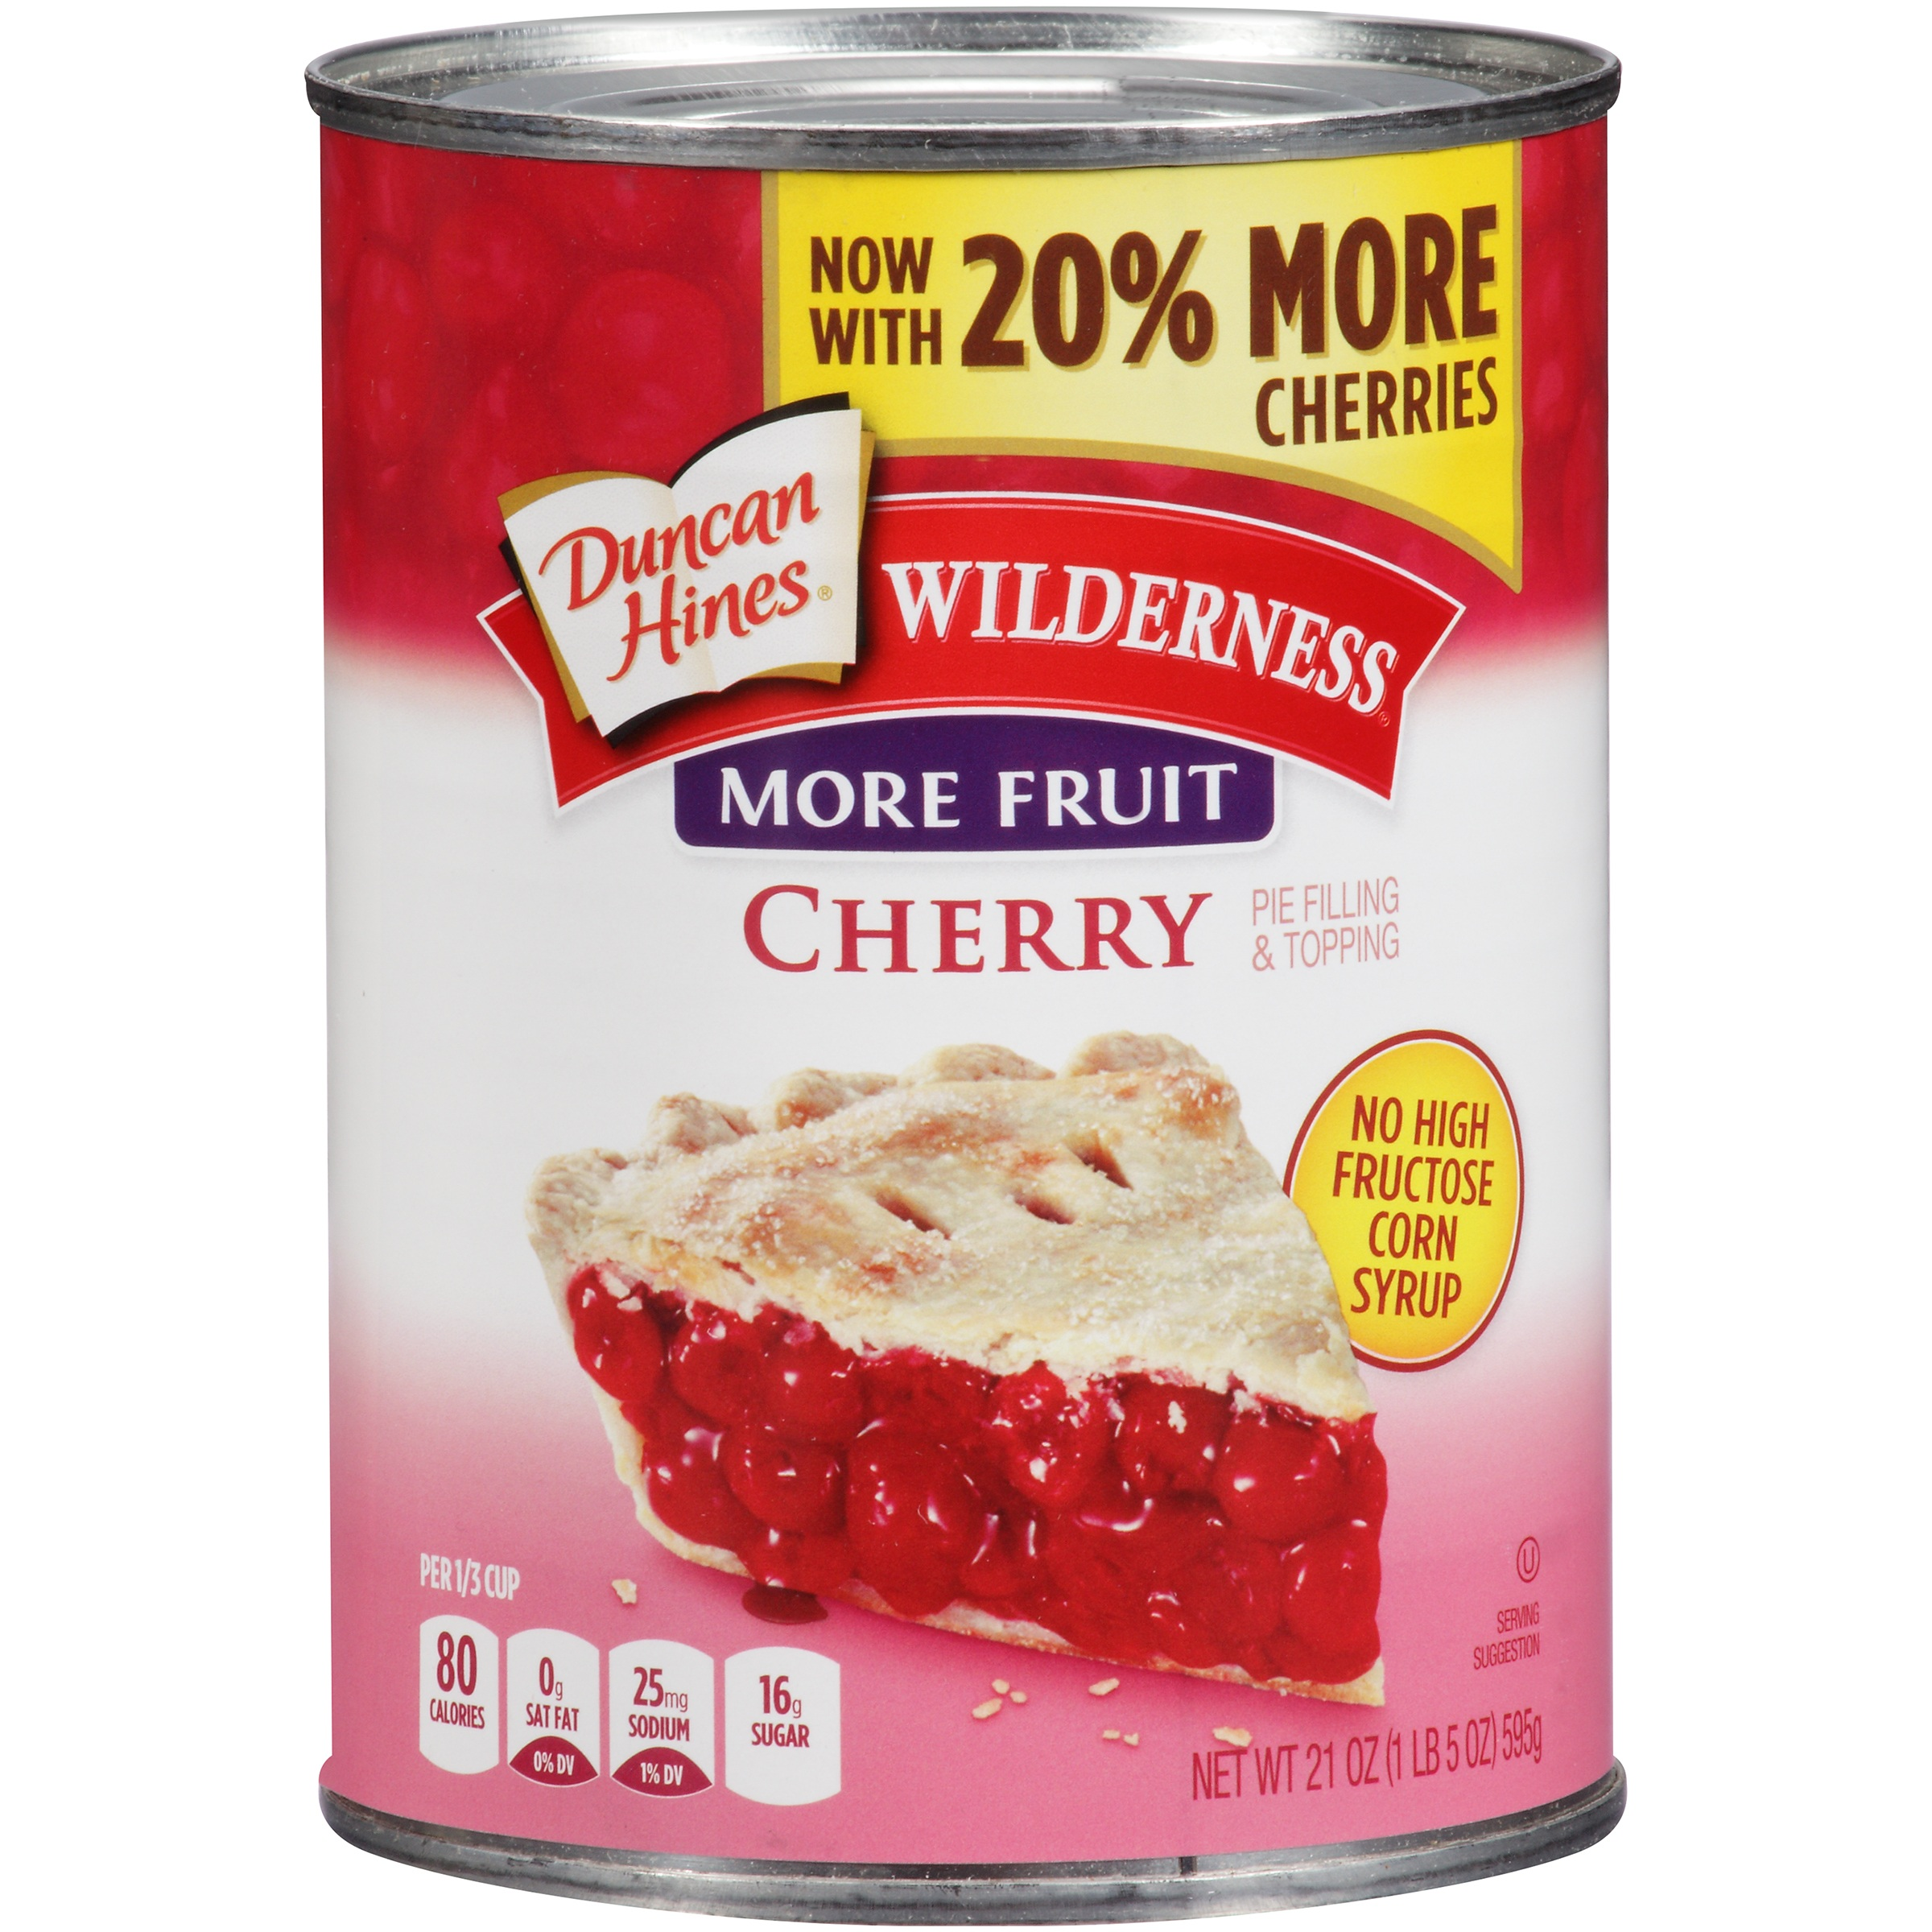 Duncan Hines Wilderness More Fruit Cherry Pie Filling & Topping, 21 oz by Generic